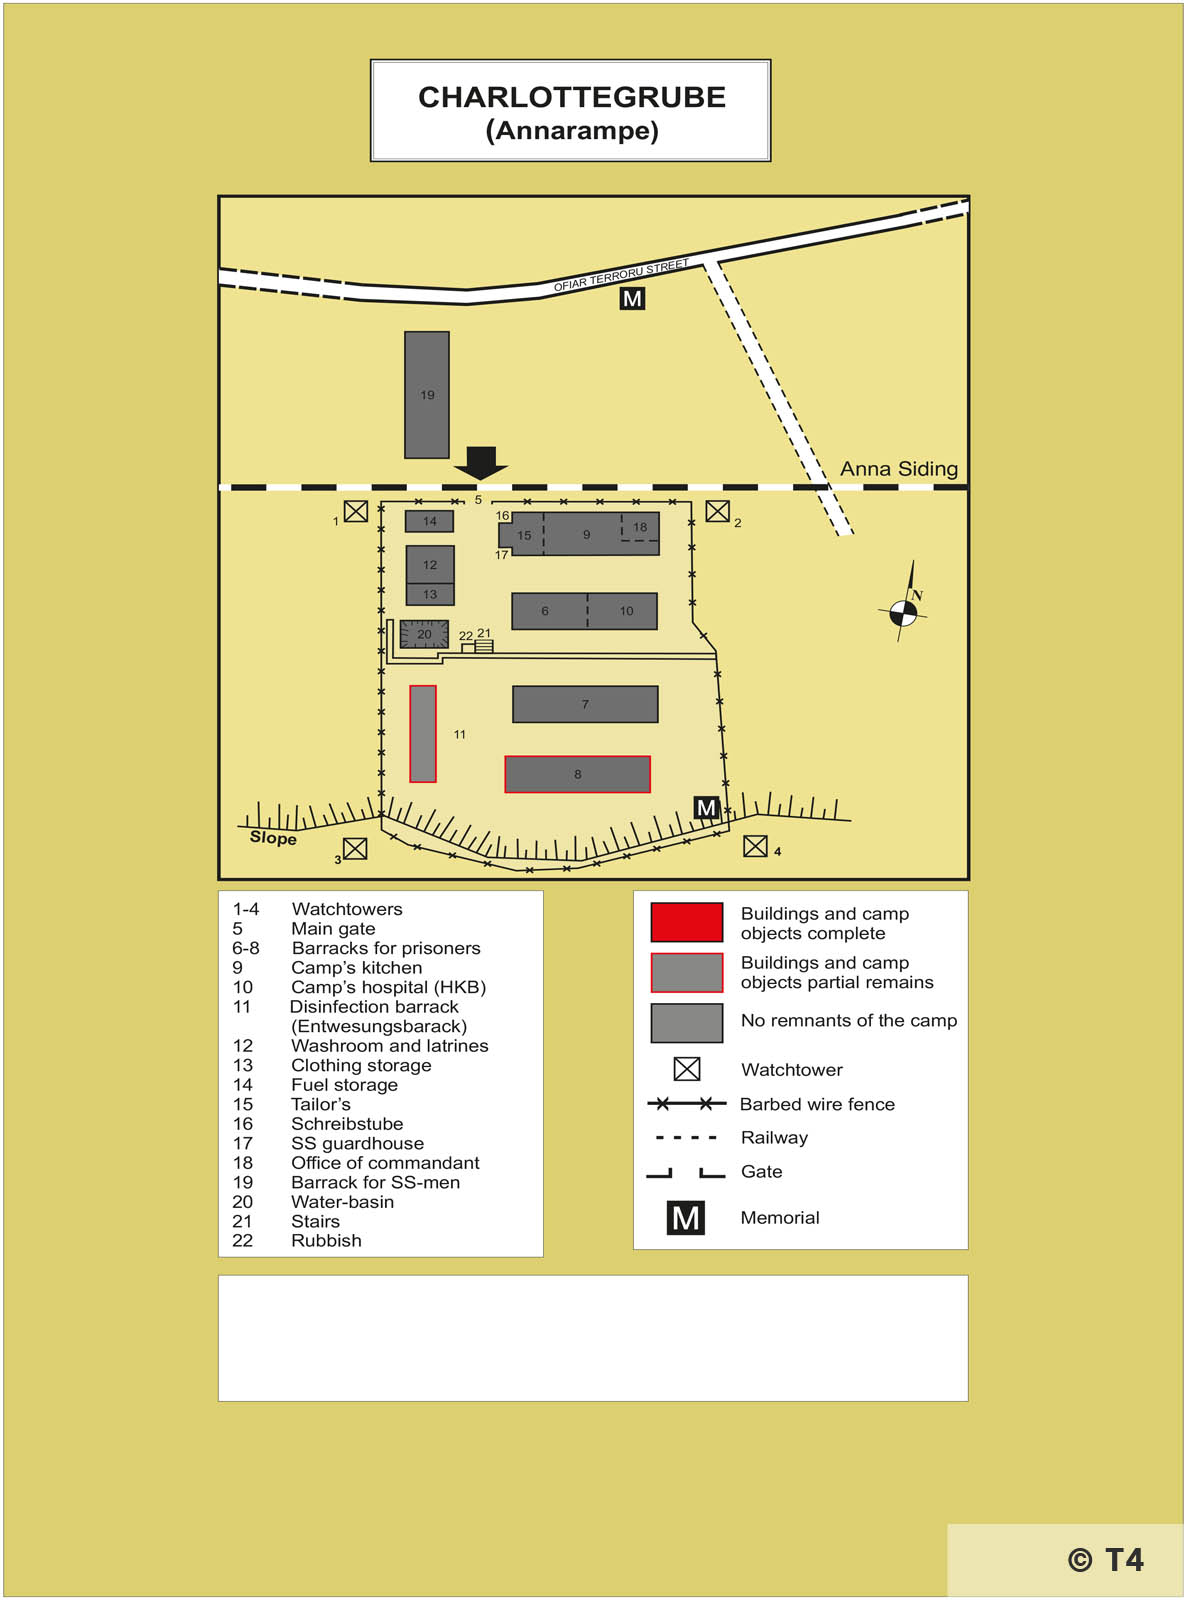 Map of Annarampe camp. T4